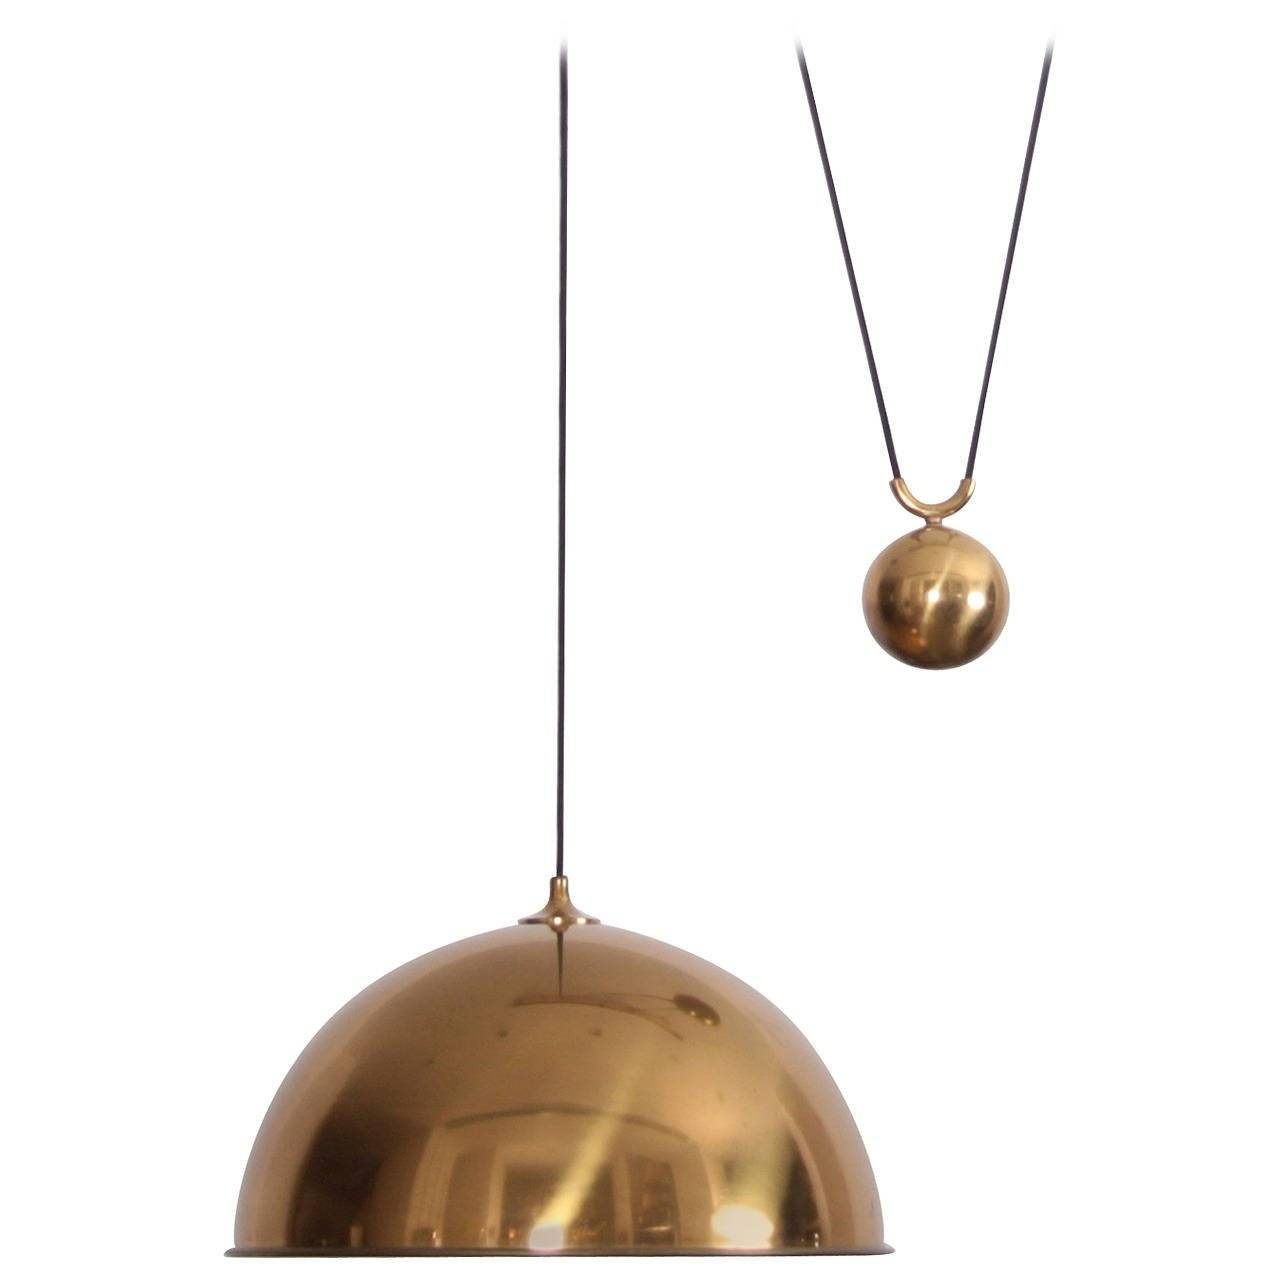 """Rare Extra Large Florian Schulz """"posa"""" Side Counterweight Pendant With Regard To Counterweight Pendant Lights (View 15 of 15)"""